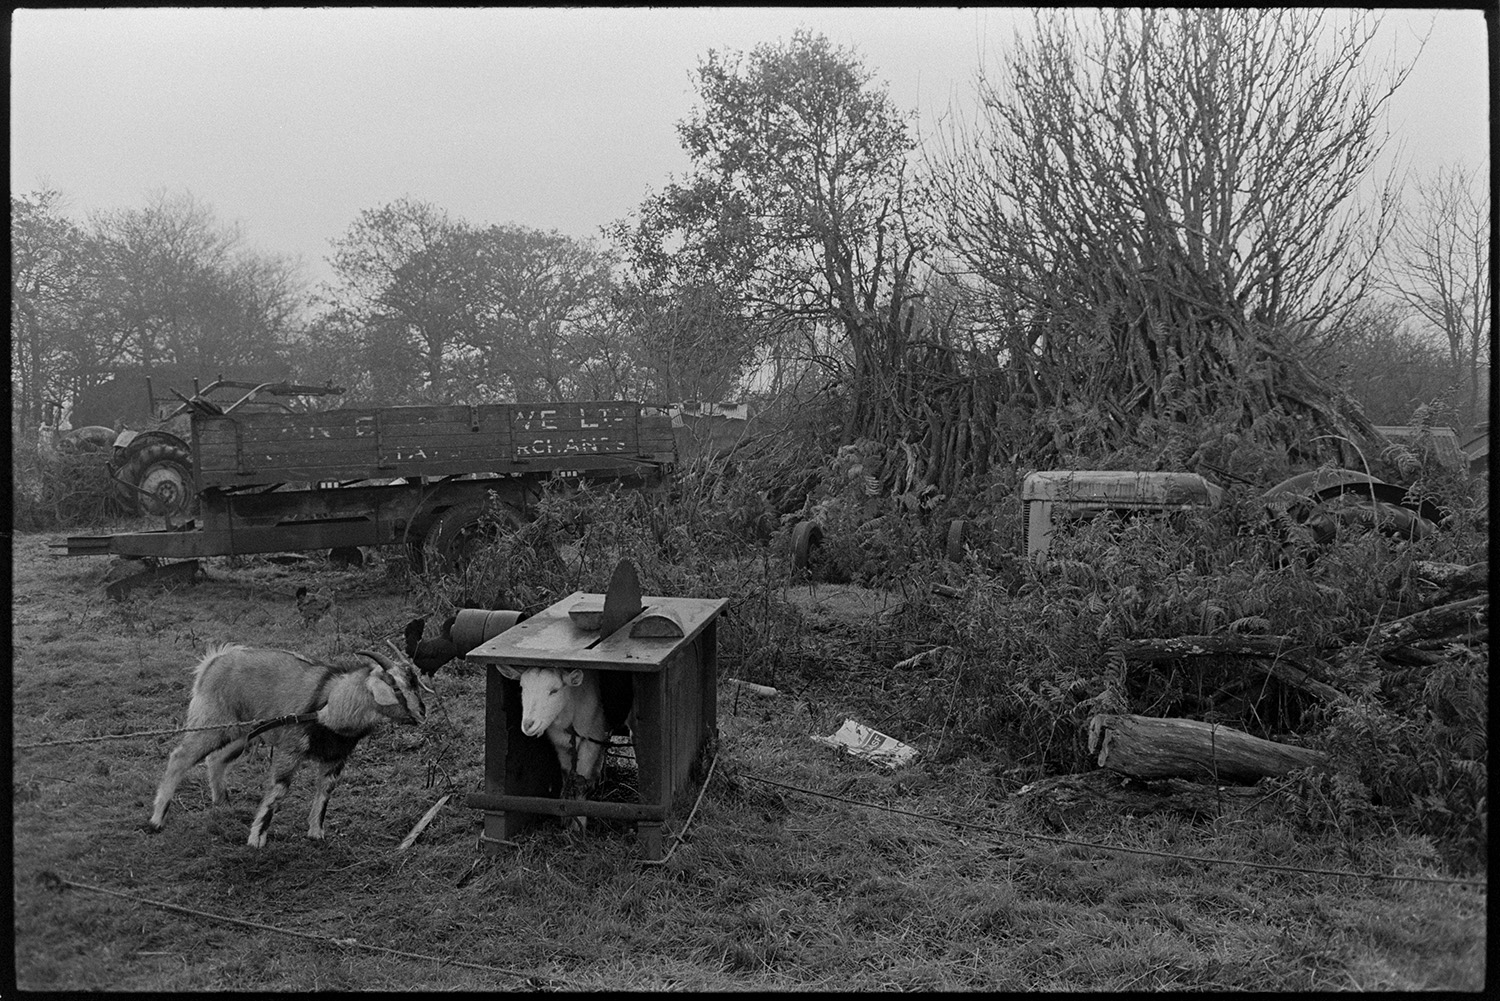 Cows, goats, geese at farm. <br /> [Two goats tethered in a field at Cuppers Piece, Beaford. One of them is under a bench with a circular saw. Two tractors and a trailer can be seen in the background.]